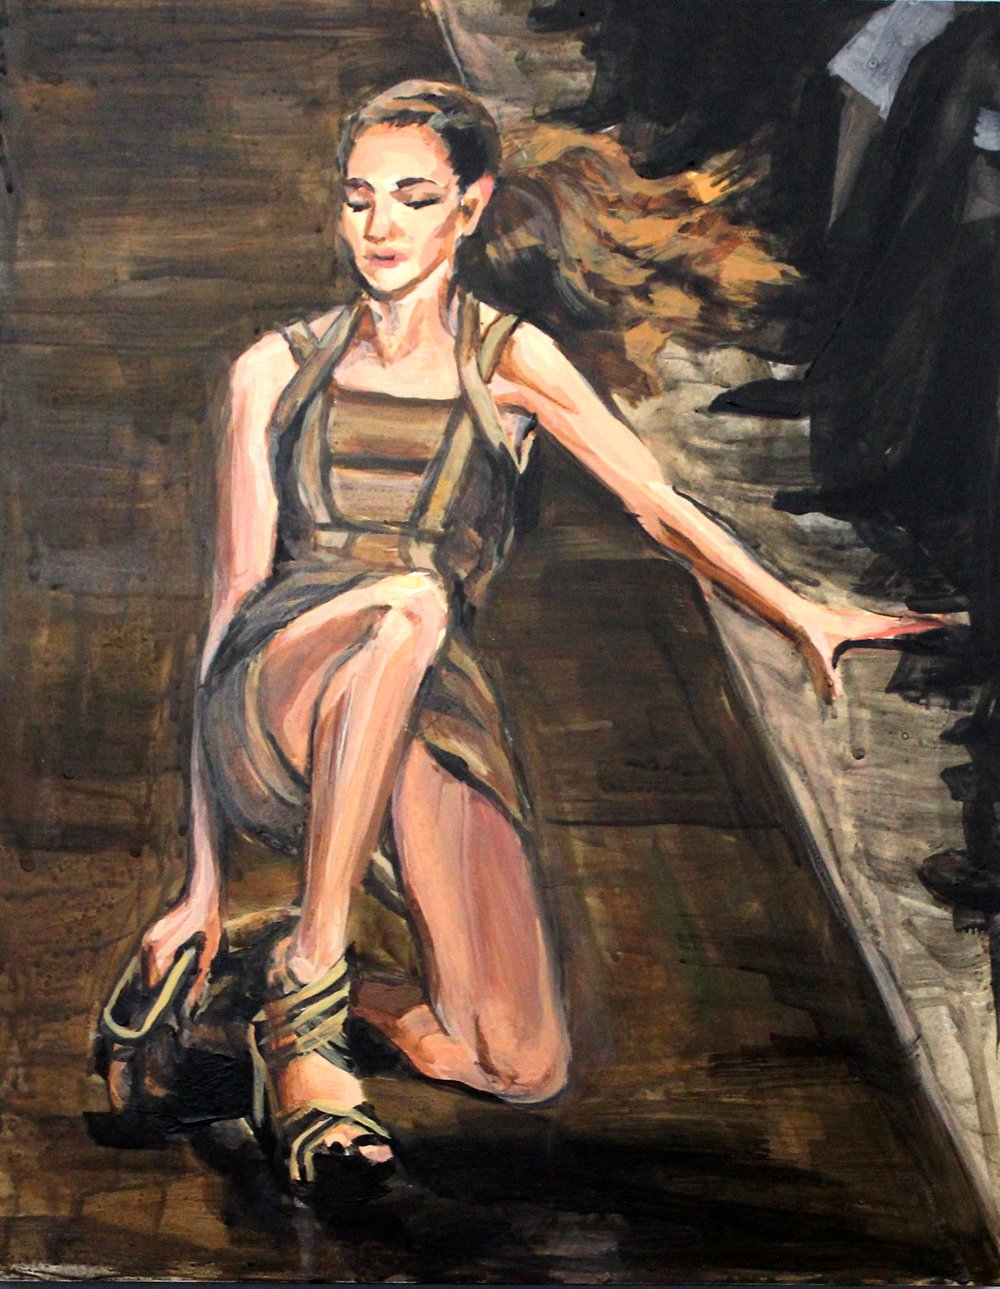 "Runway Model Falling no.6 (Monika Jagaciak during Herve Leger) 11"" x 14"" acrylic on panel"